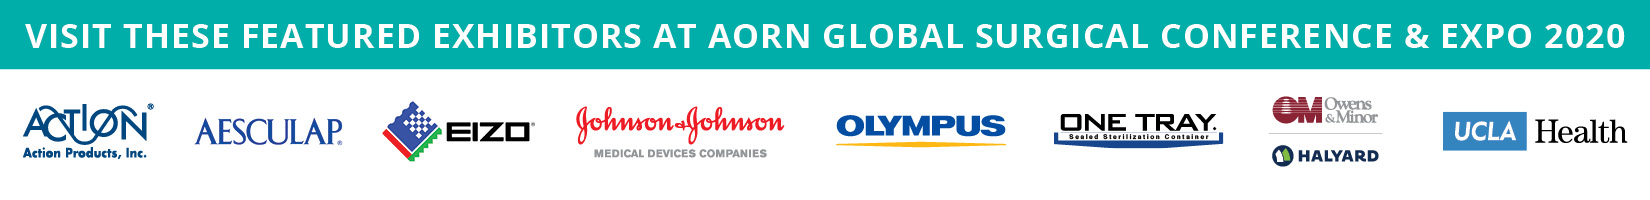 AORN Global Surgical Conference & Expo - Featured Exhibitors